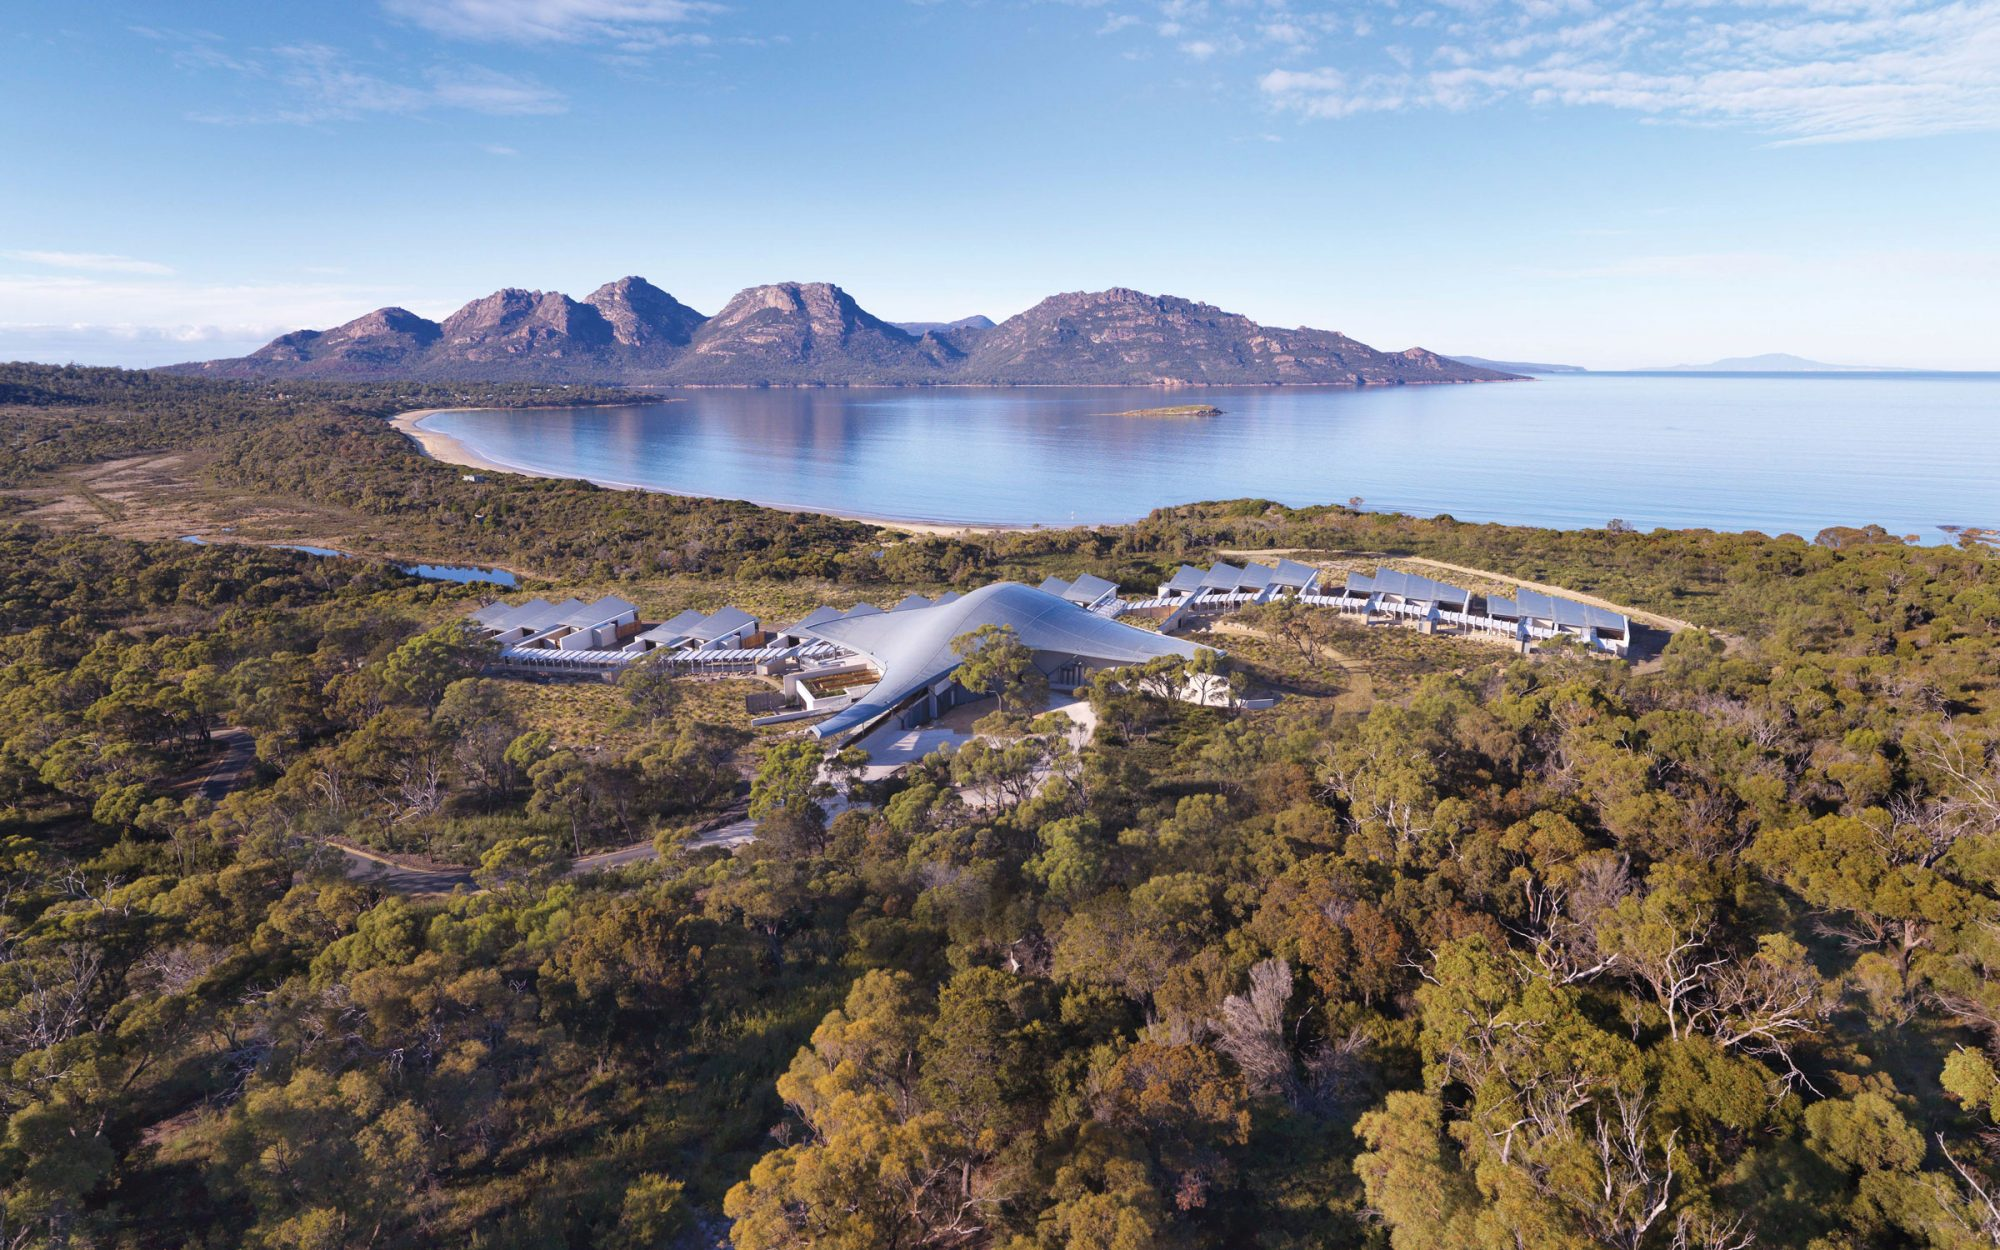 Meet Tasmanian Devils at This Remote Luxury Lodge